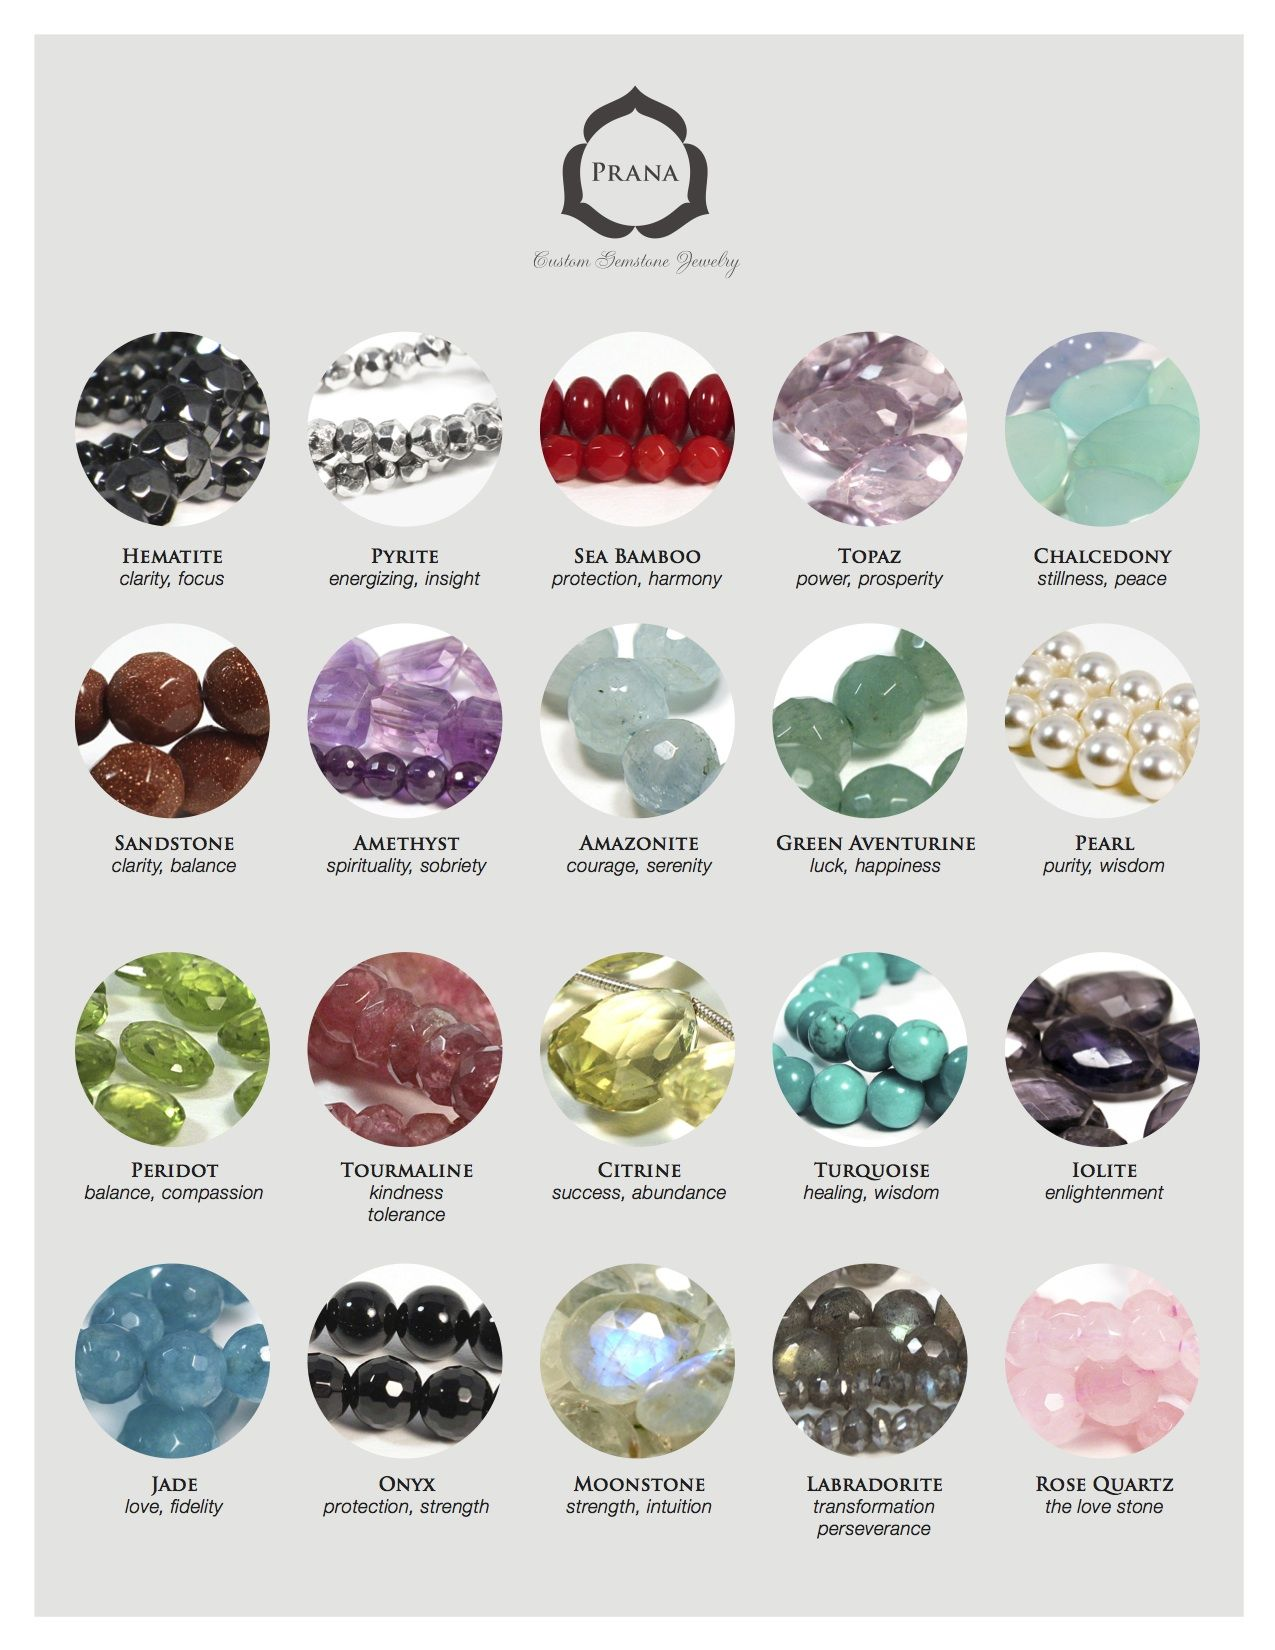 gemstones prana custom gemstone jewelry in halifax